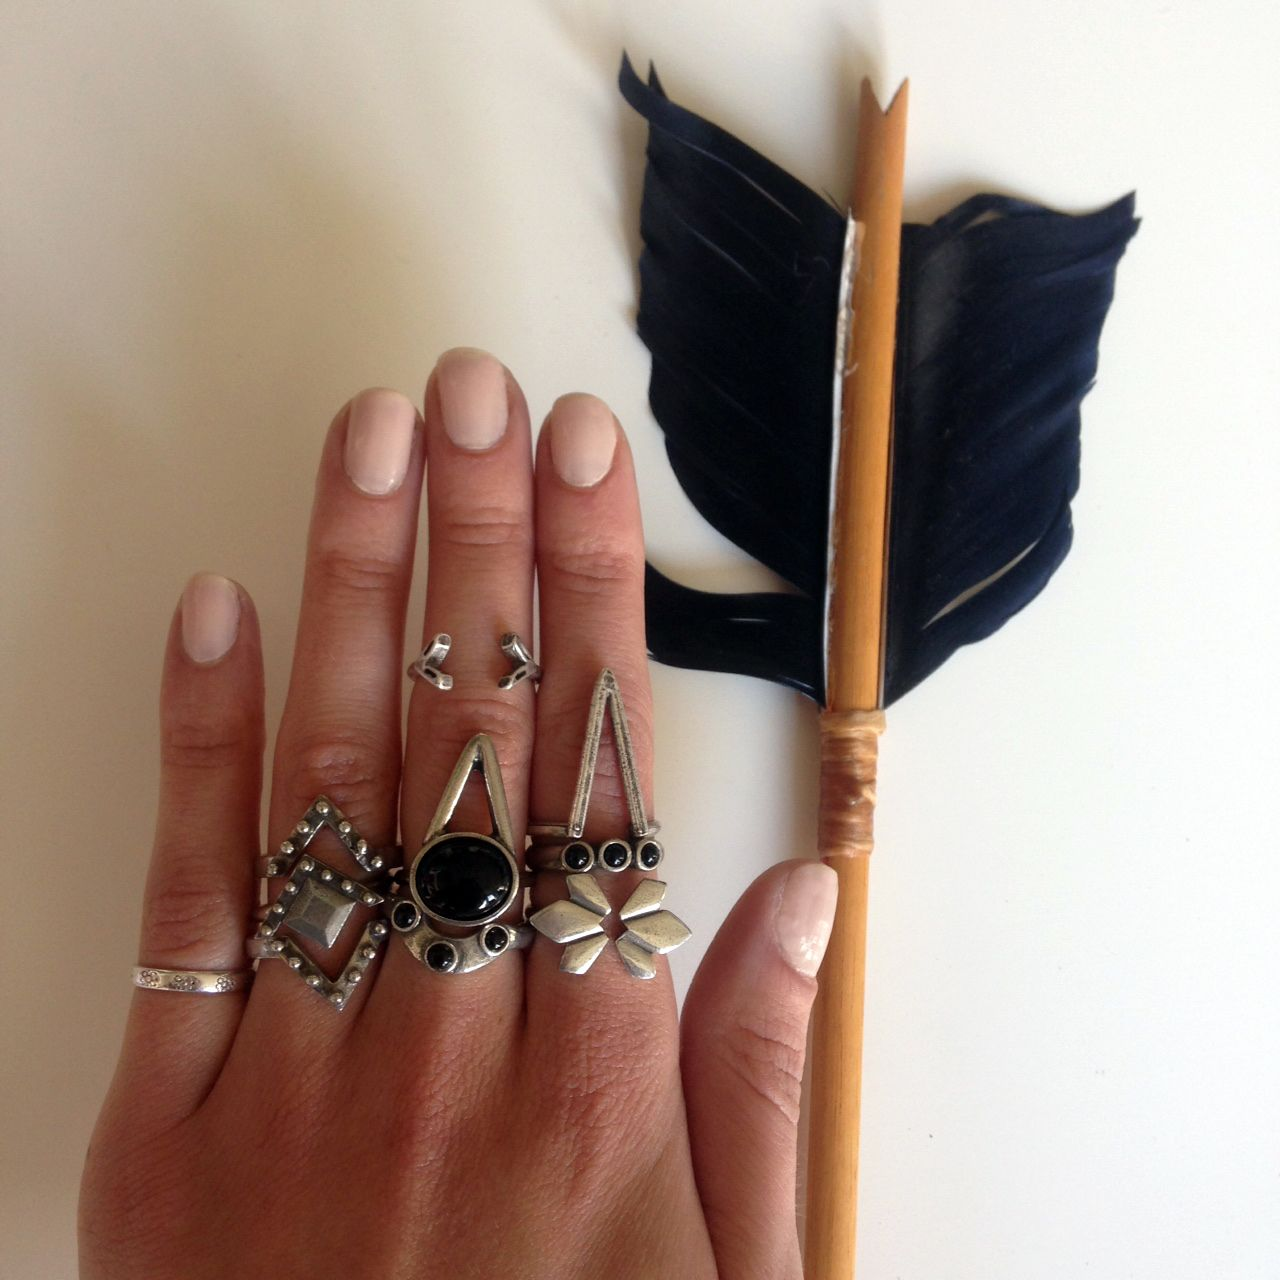 Ring Sets in black onyx/silver. We love #banditstackingsets! #the2bandits